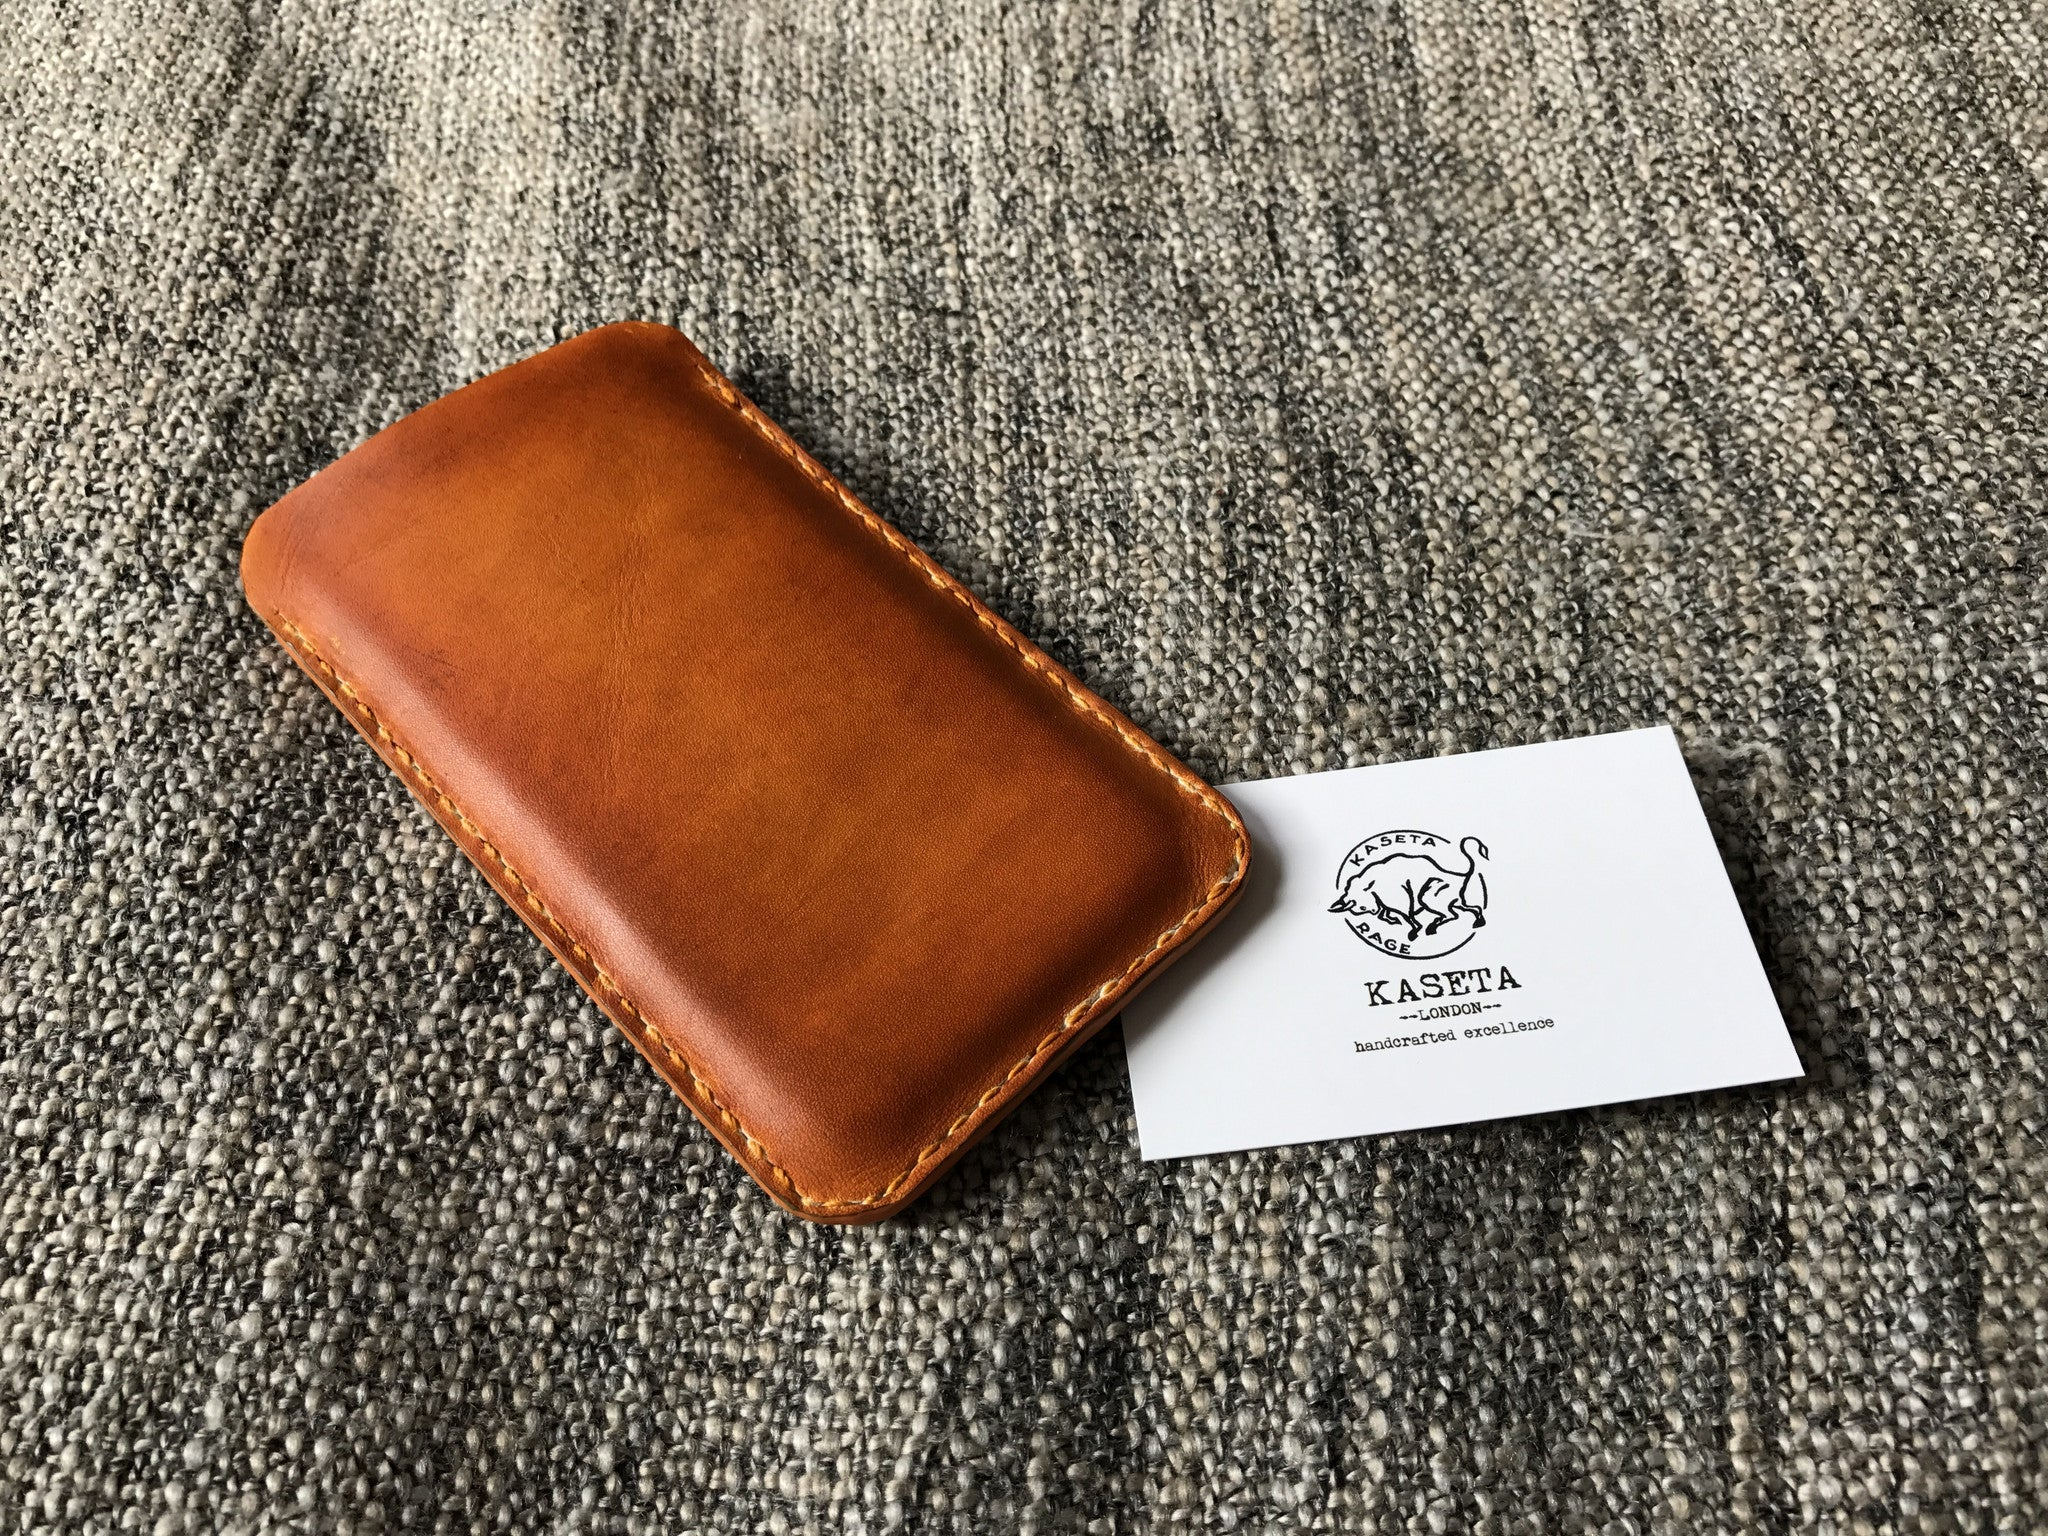 cuoio del sacchetto,  кожаный мешок iphone, leather sleeve with suede inlay